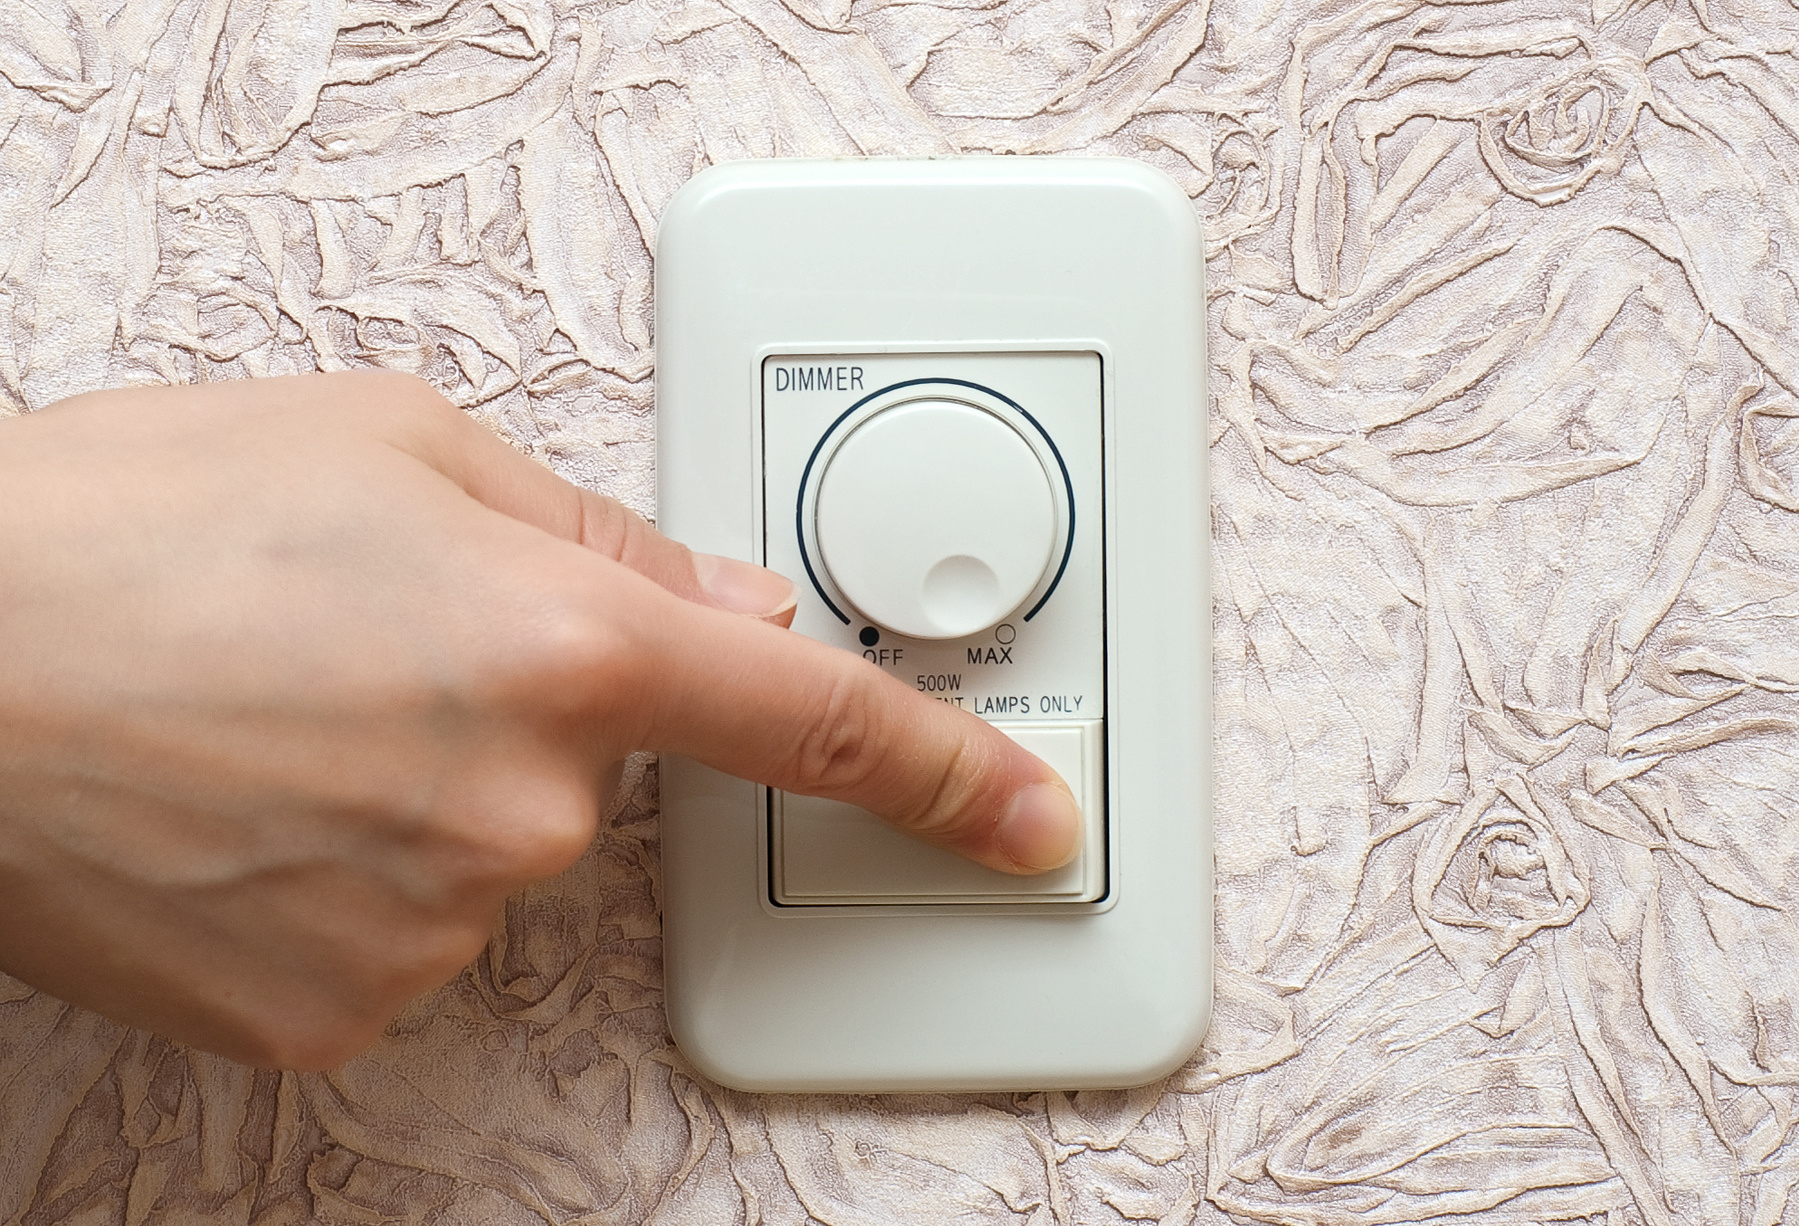 Women's hand switches off light in the room